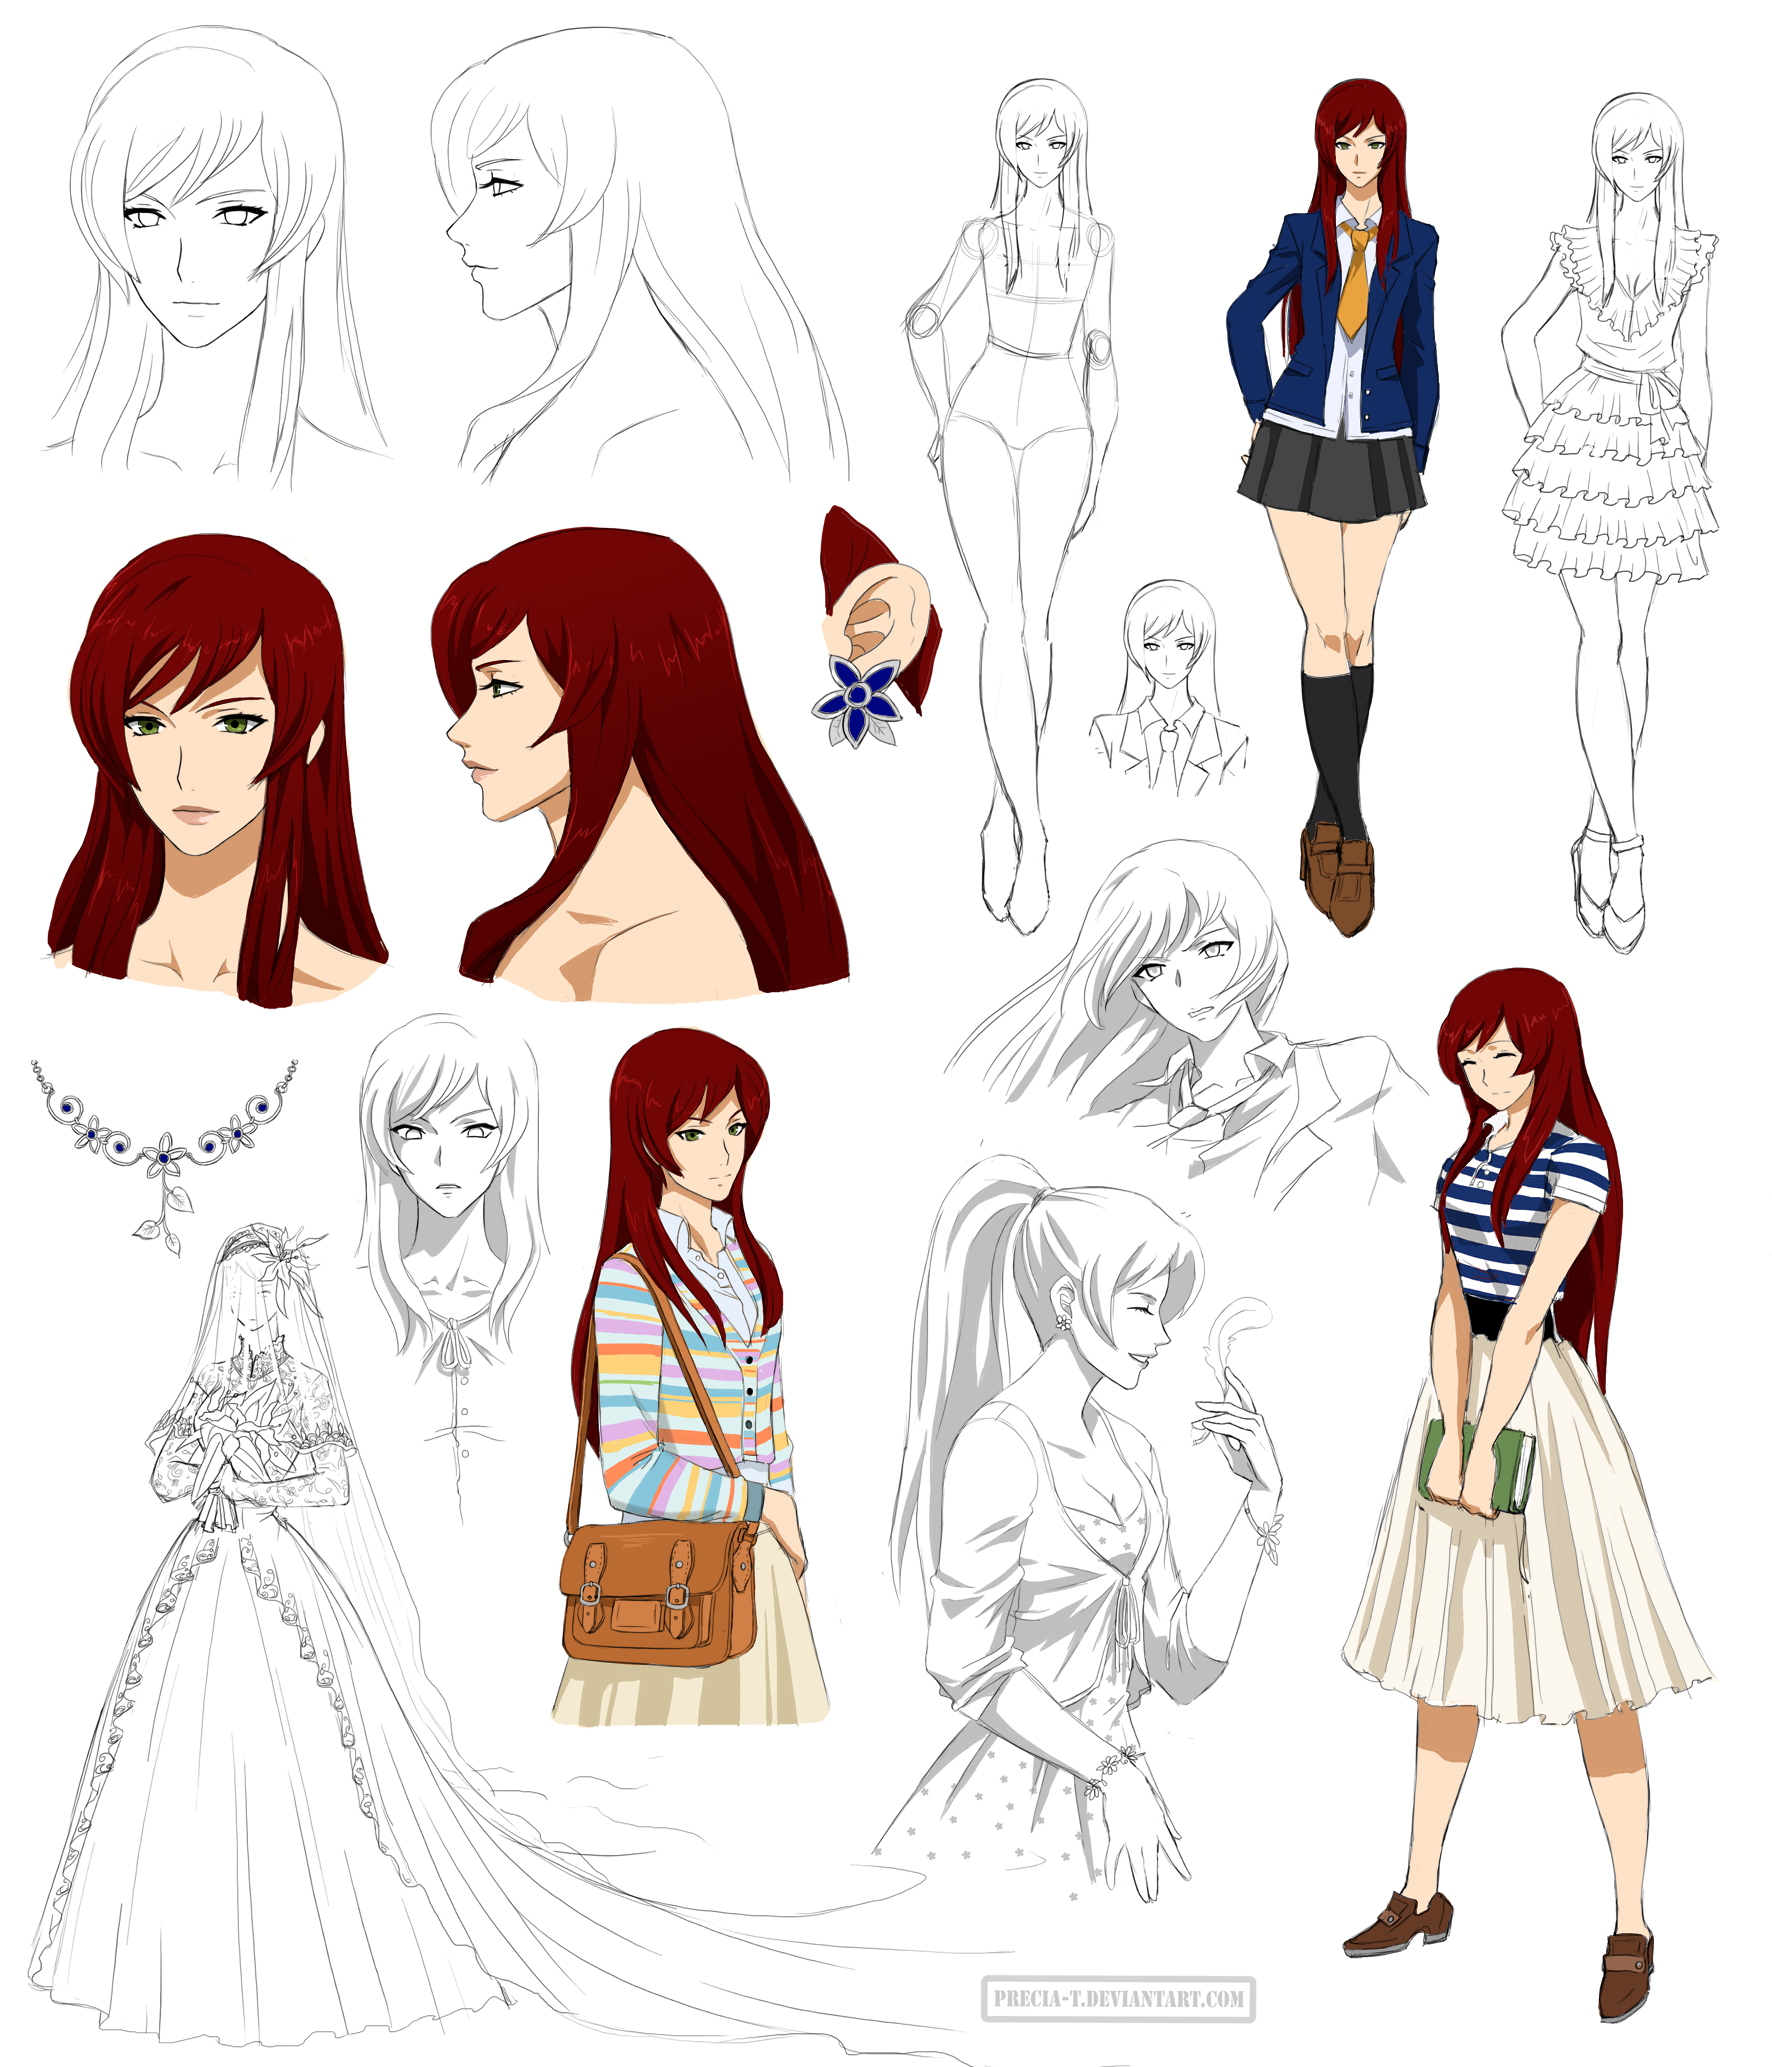 Anime Female Character Design : Gentle girl design kaho commision by precia t on deviantart